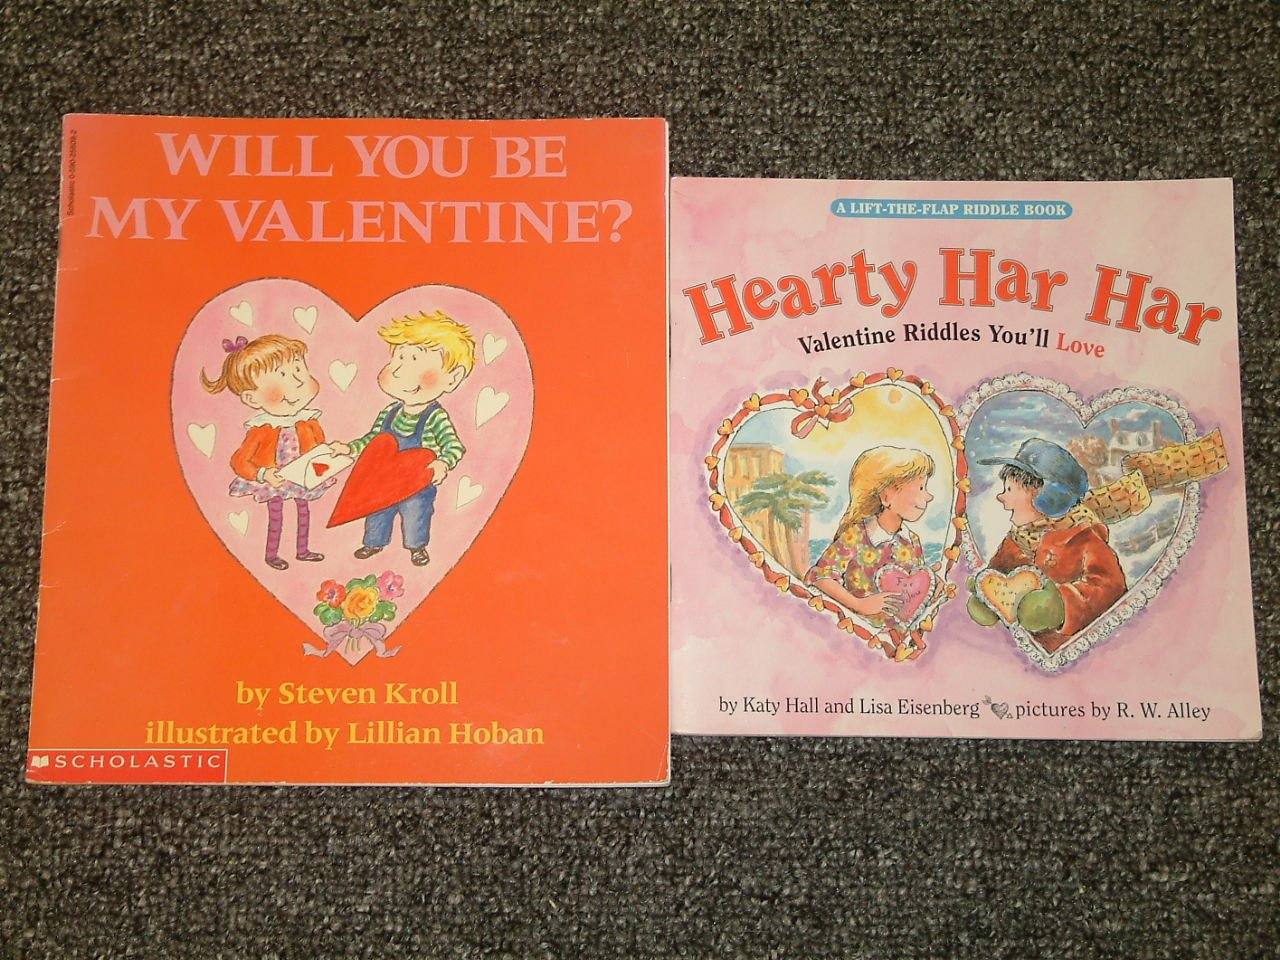 Will You Be My Valentine and Hearty Har Har Valentine Riddles